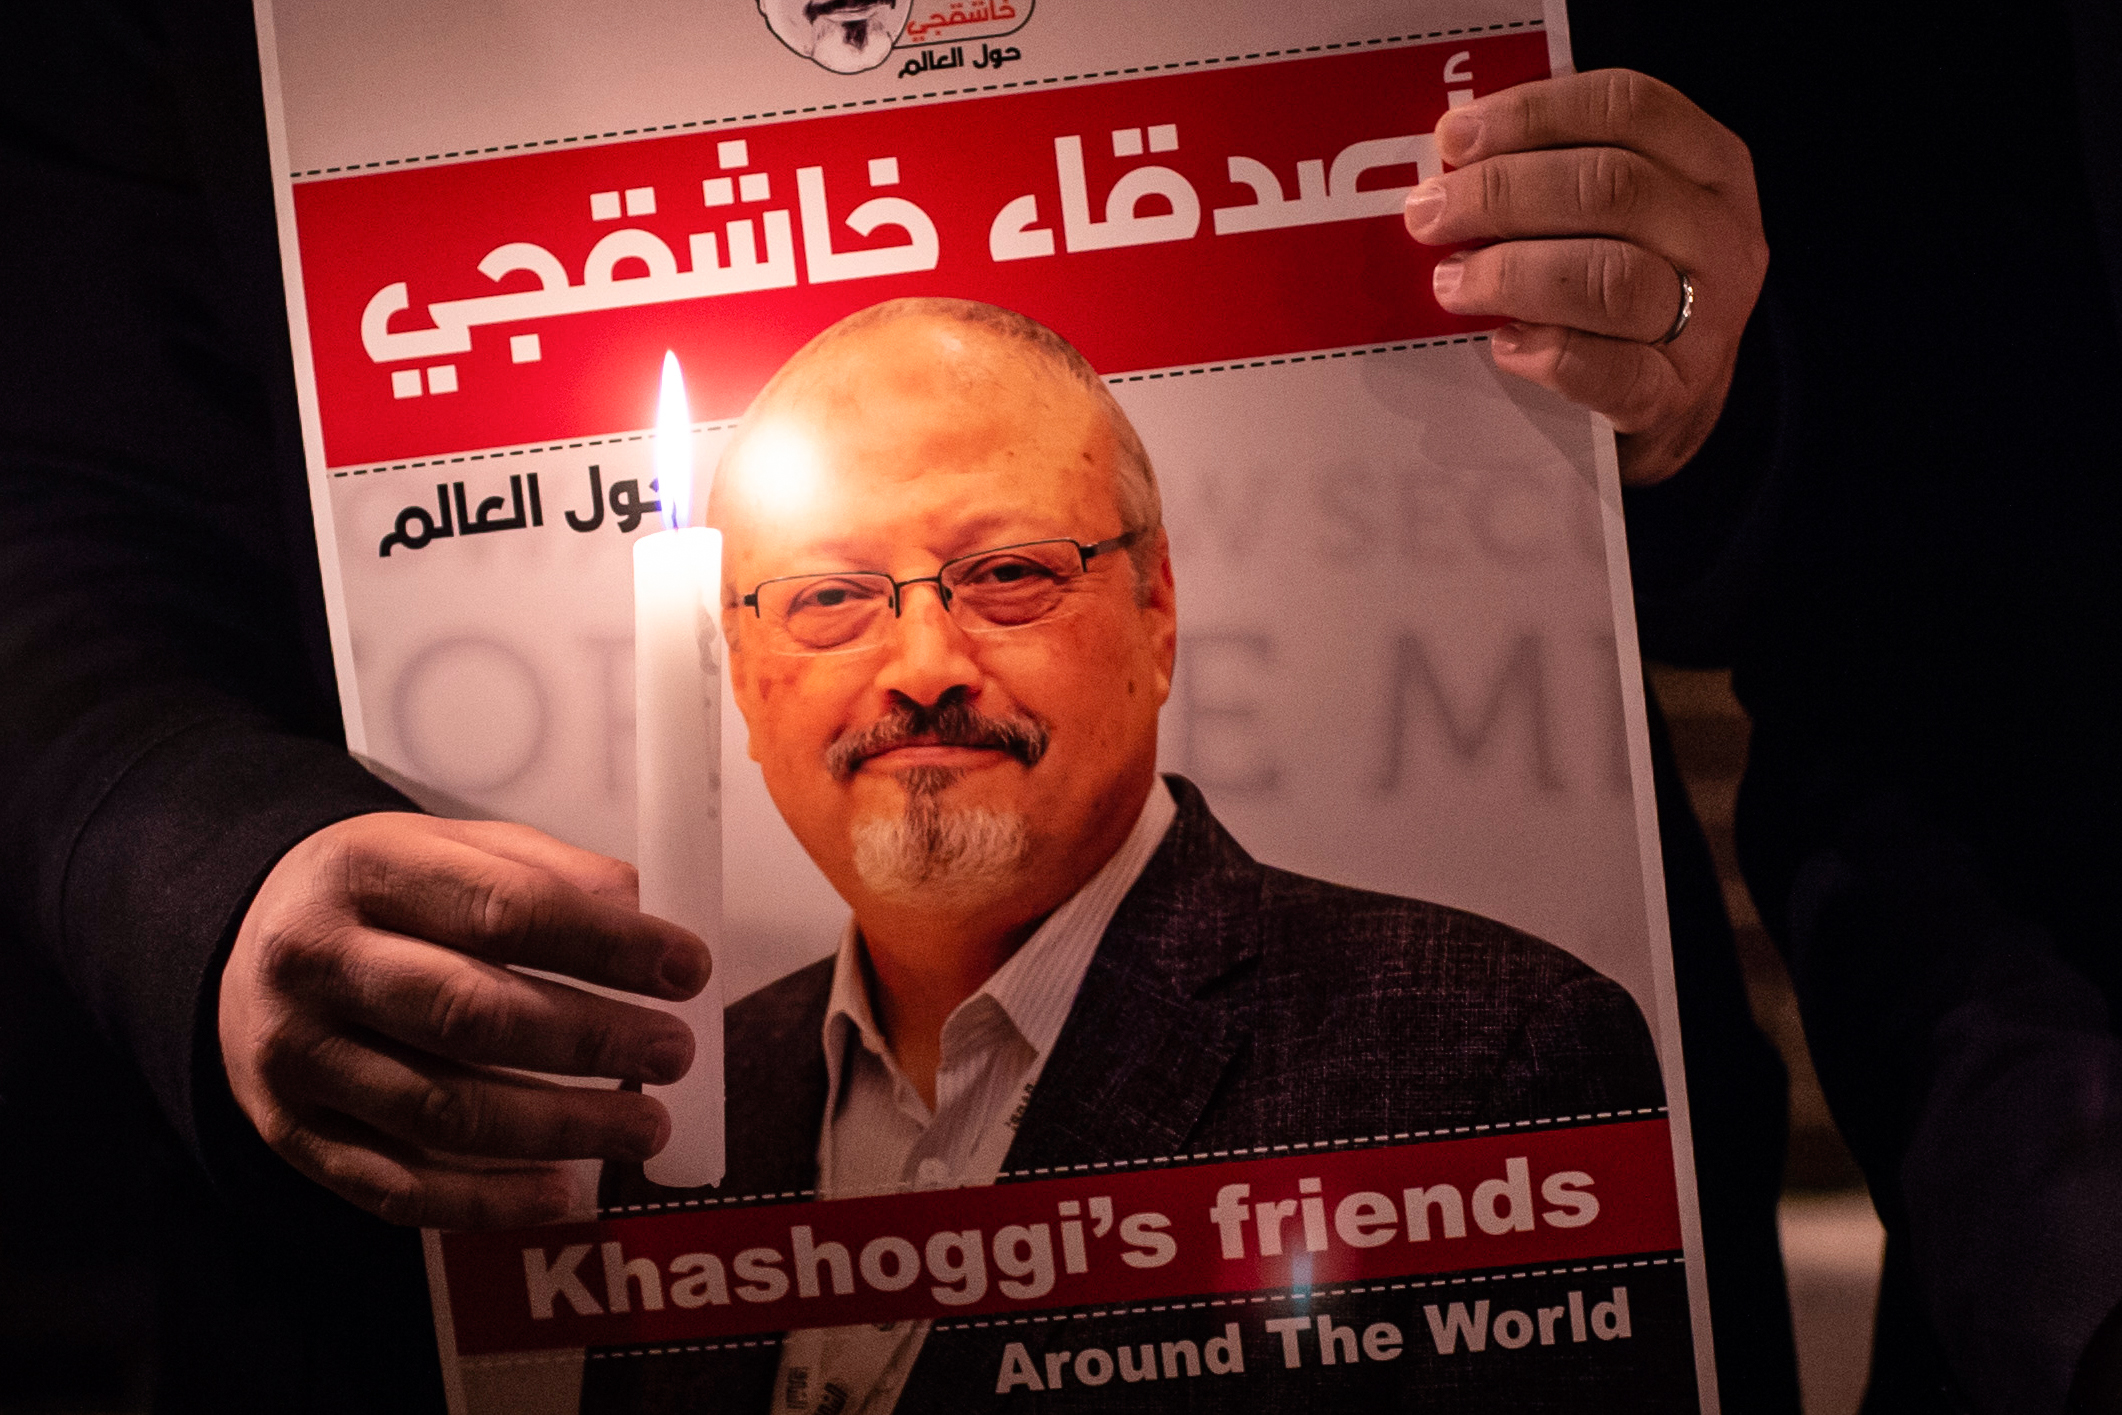 TOPSHOT - A demonstrator holds a poster picturing Saudi journalist Jamal Khashoggi and a lightened candle during a gathering outside the Saudi Arabia consulate in Istanbul, on October 25, 2018. - Jamal Khashoggi, a Washington Post contributor, was killed on October 2, 2018 after a visit to the Saudi consulate in Istanbul to obtain paperwork before marrying his Turkish fiancee. (Photo by Yasin AKGUL / AFP)        (Photo credit should read YASIN AKGUL/AFP/Getty Images)